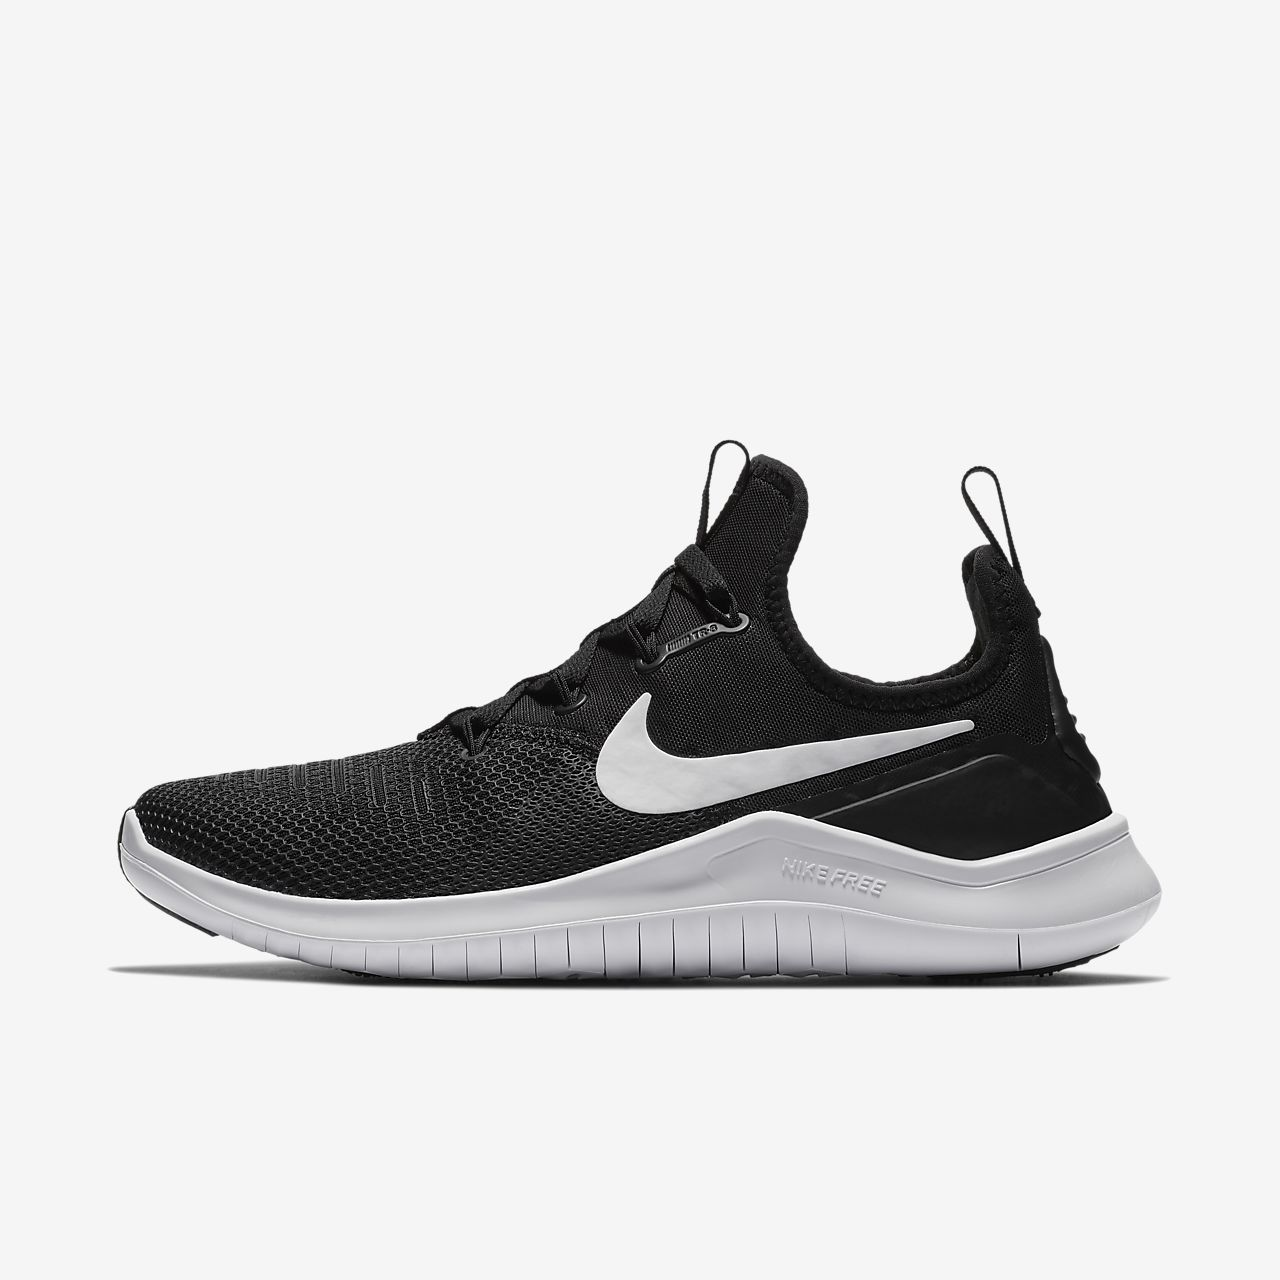 534853d7aef39 Nike Free TR8 Women s Gym HIIT Cross Training Shoe. Nike.com